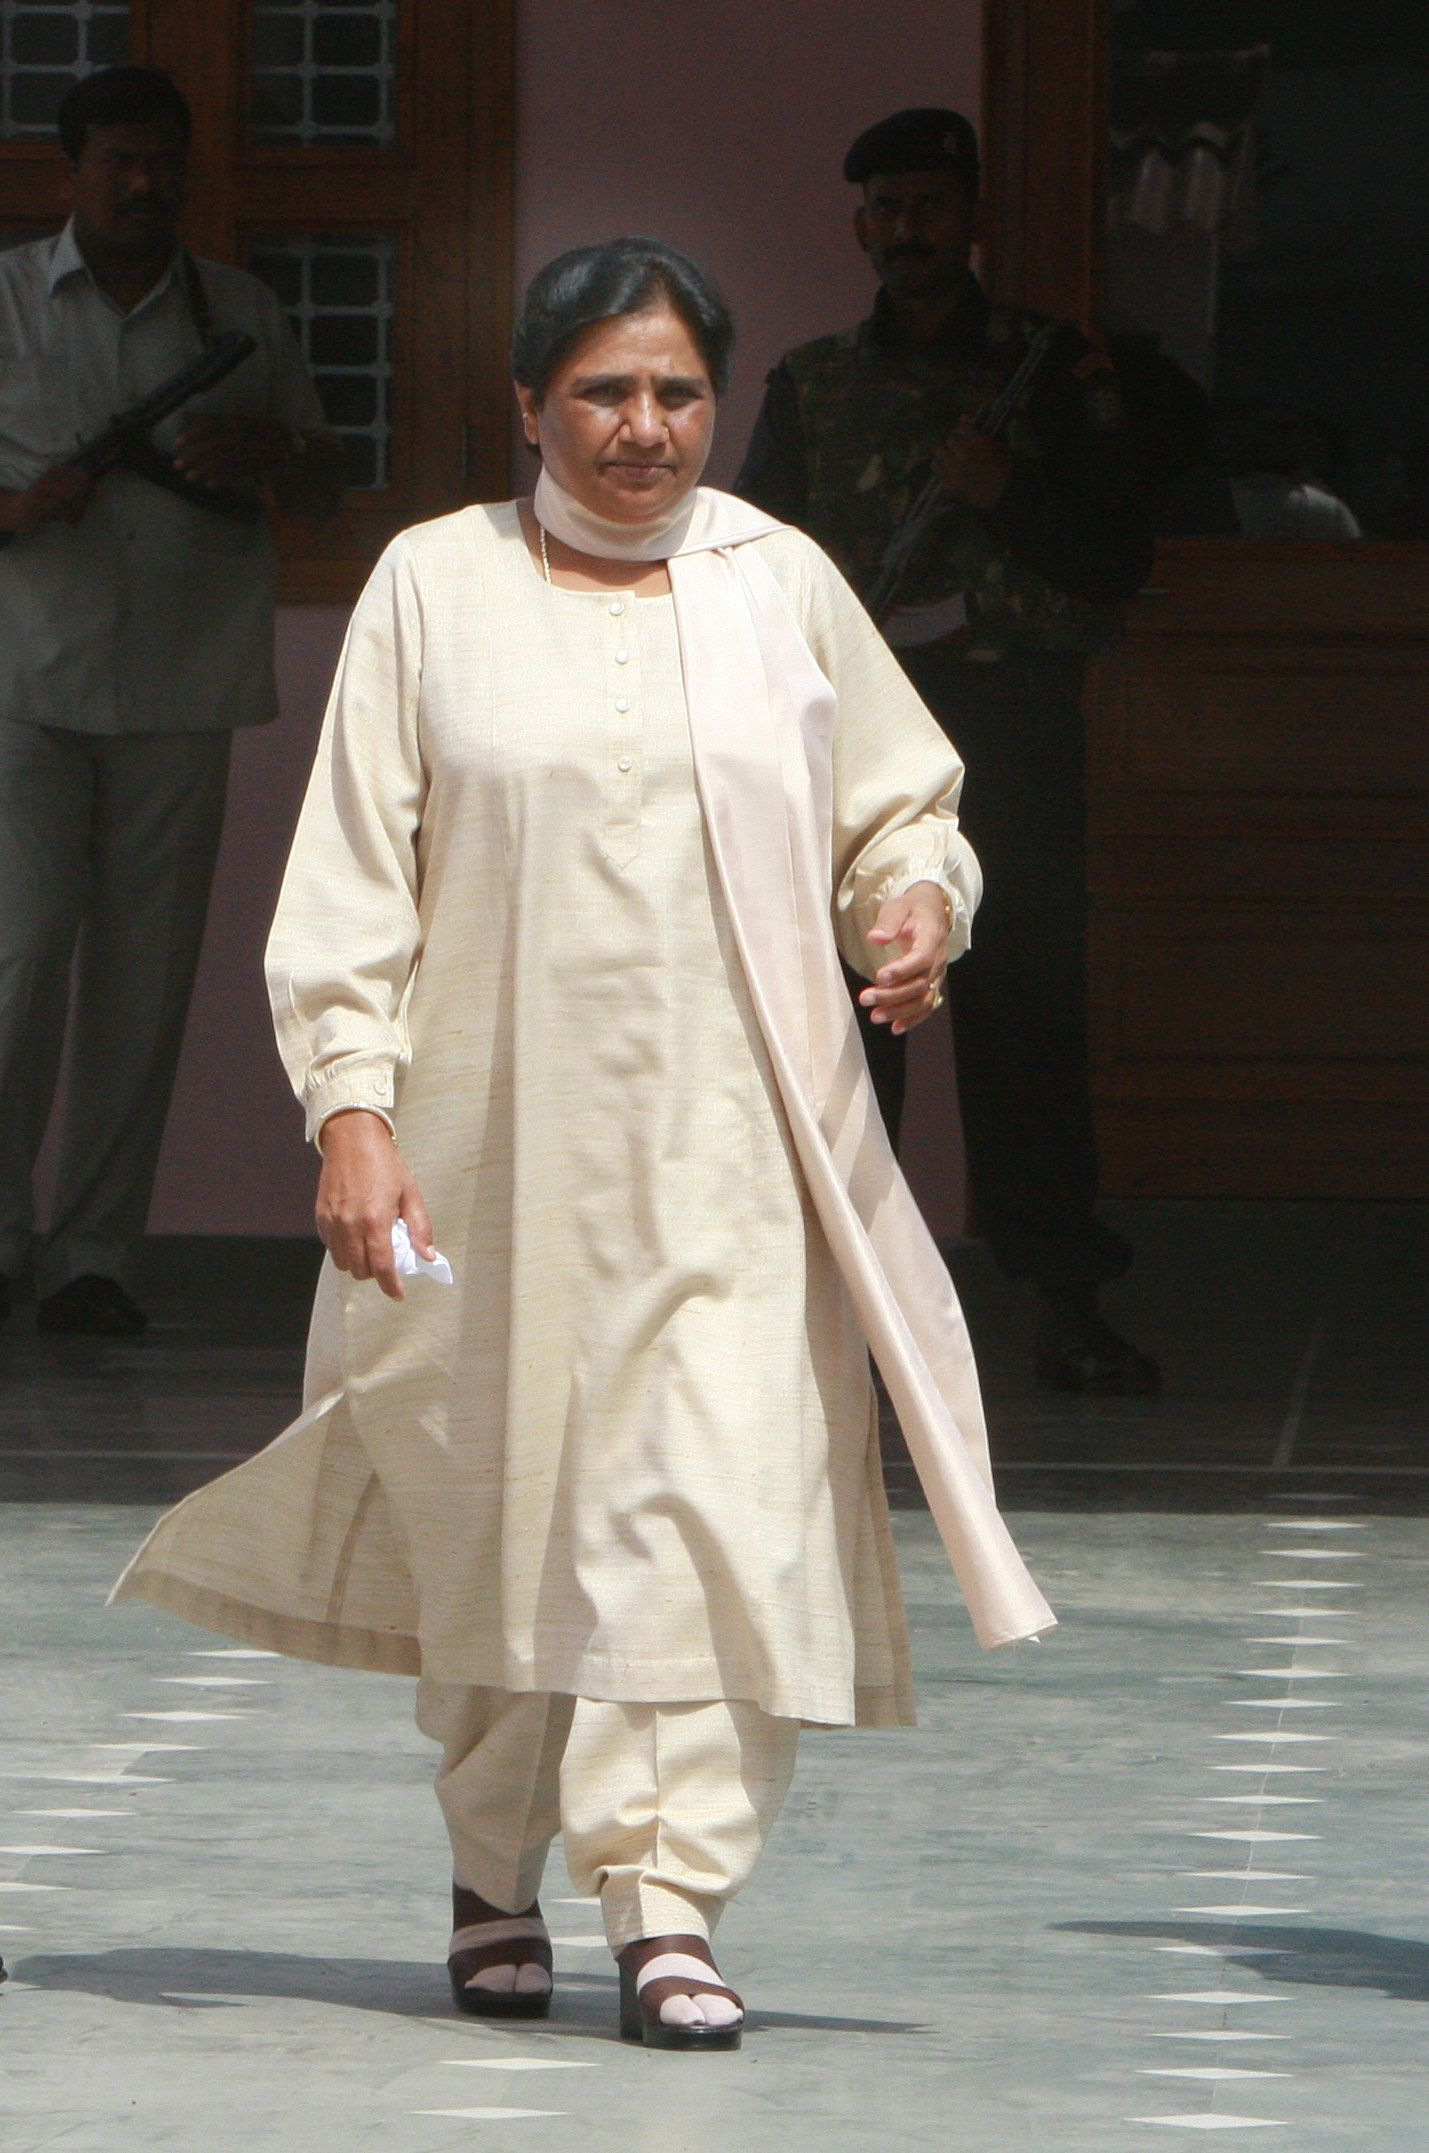 Mayawati Has To Deposit Public Money Spent On Her Statues, Says Supreme